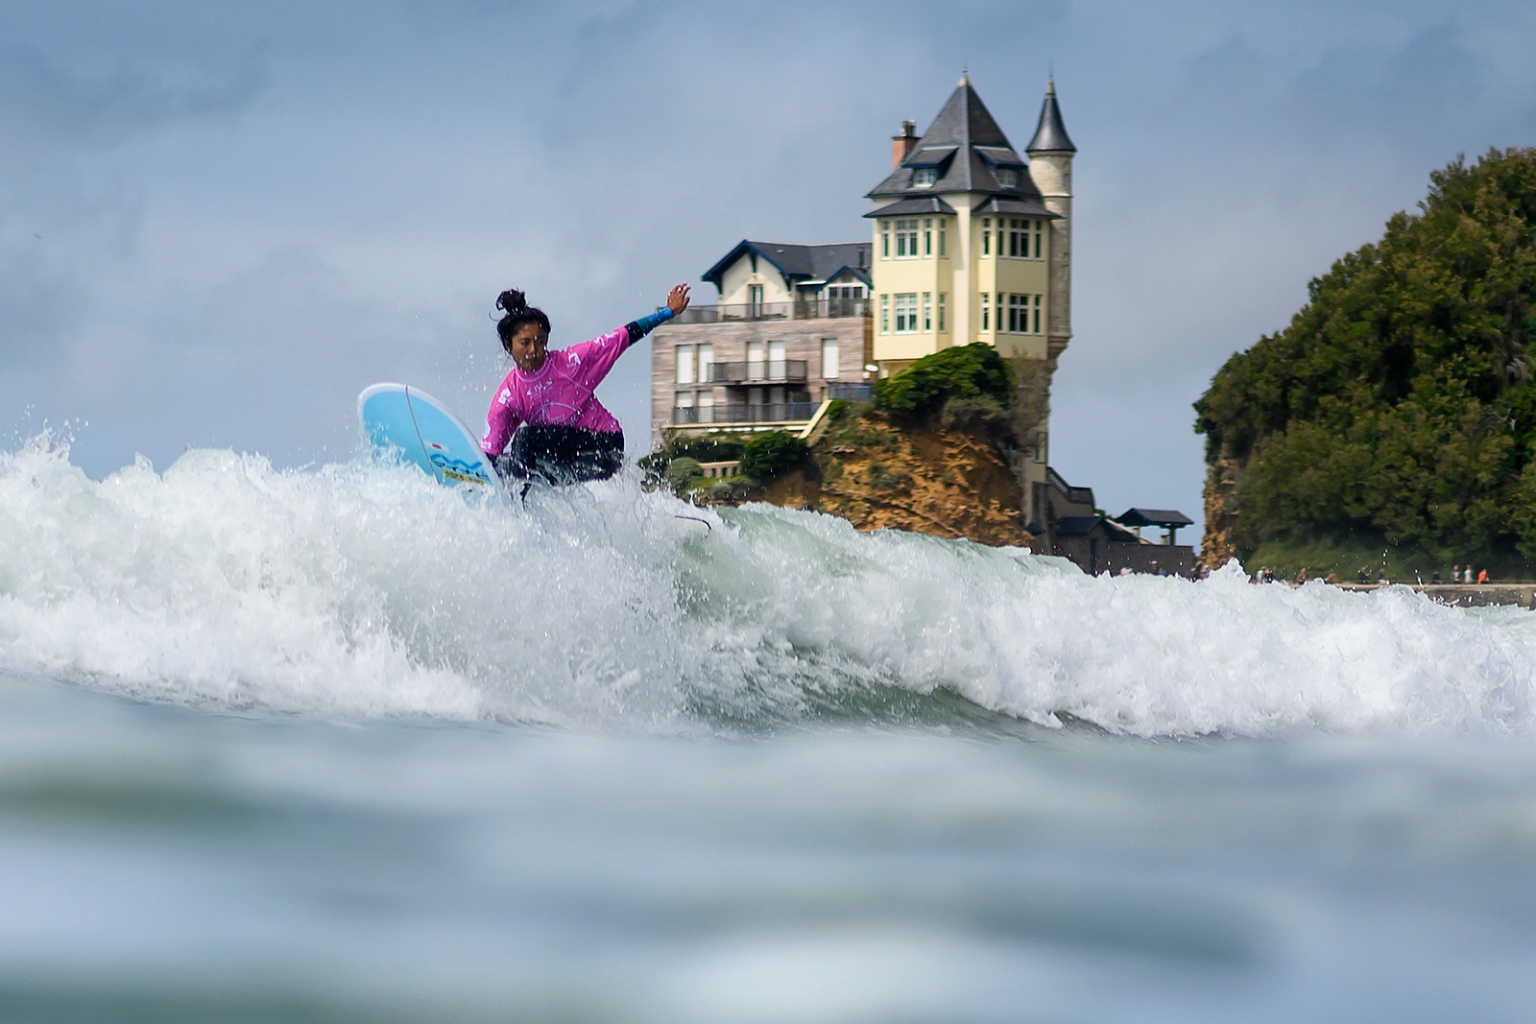 Japan's Natsumi Taoka rides a wave during the Longboard Surfing World Championships in Biarritz, southern France, on May 26. OLIVIER MORIN/AFP/Getty Images